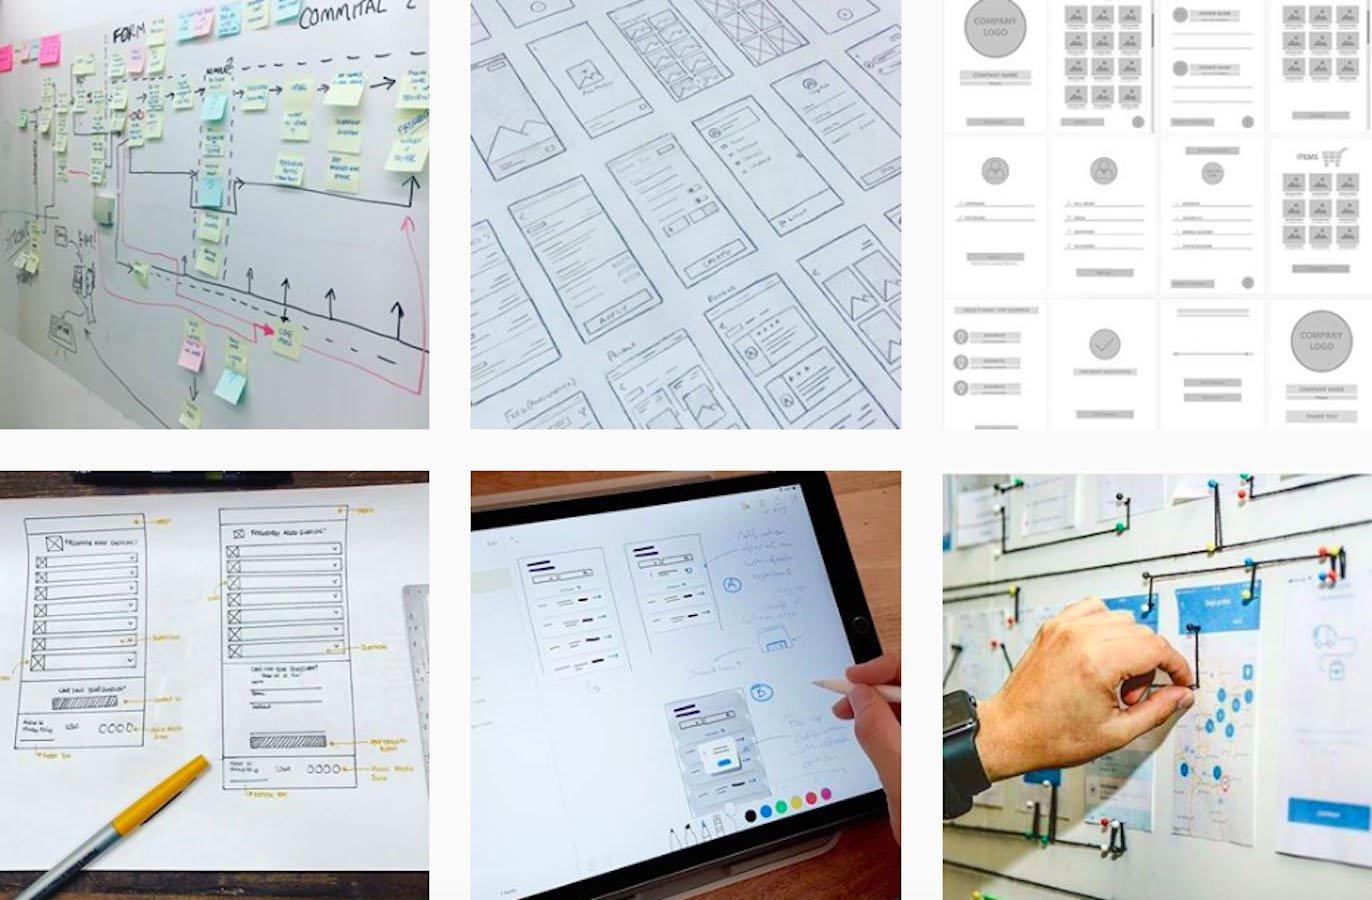 Web Design Inspiration: 110+ Accounts On Instagram and 10+ Best UX & Web Design Books in 2020 - ux ui wireframes